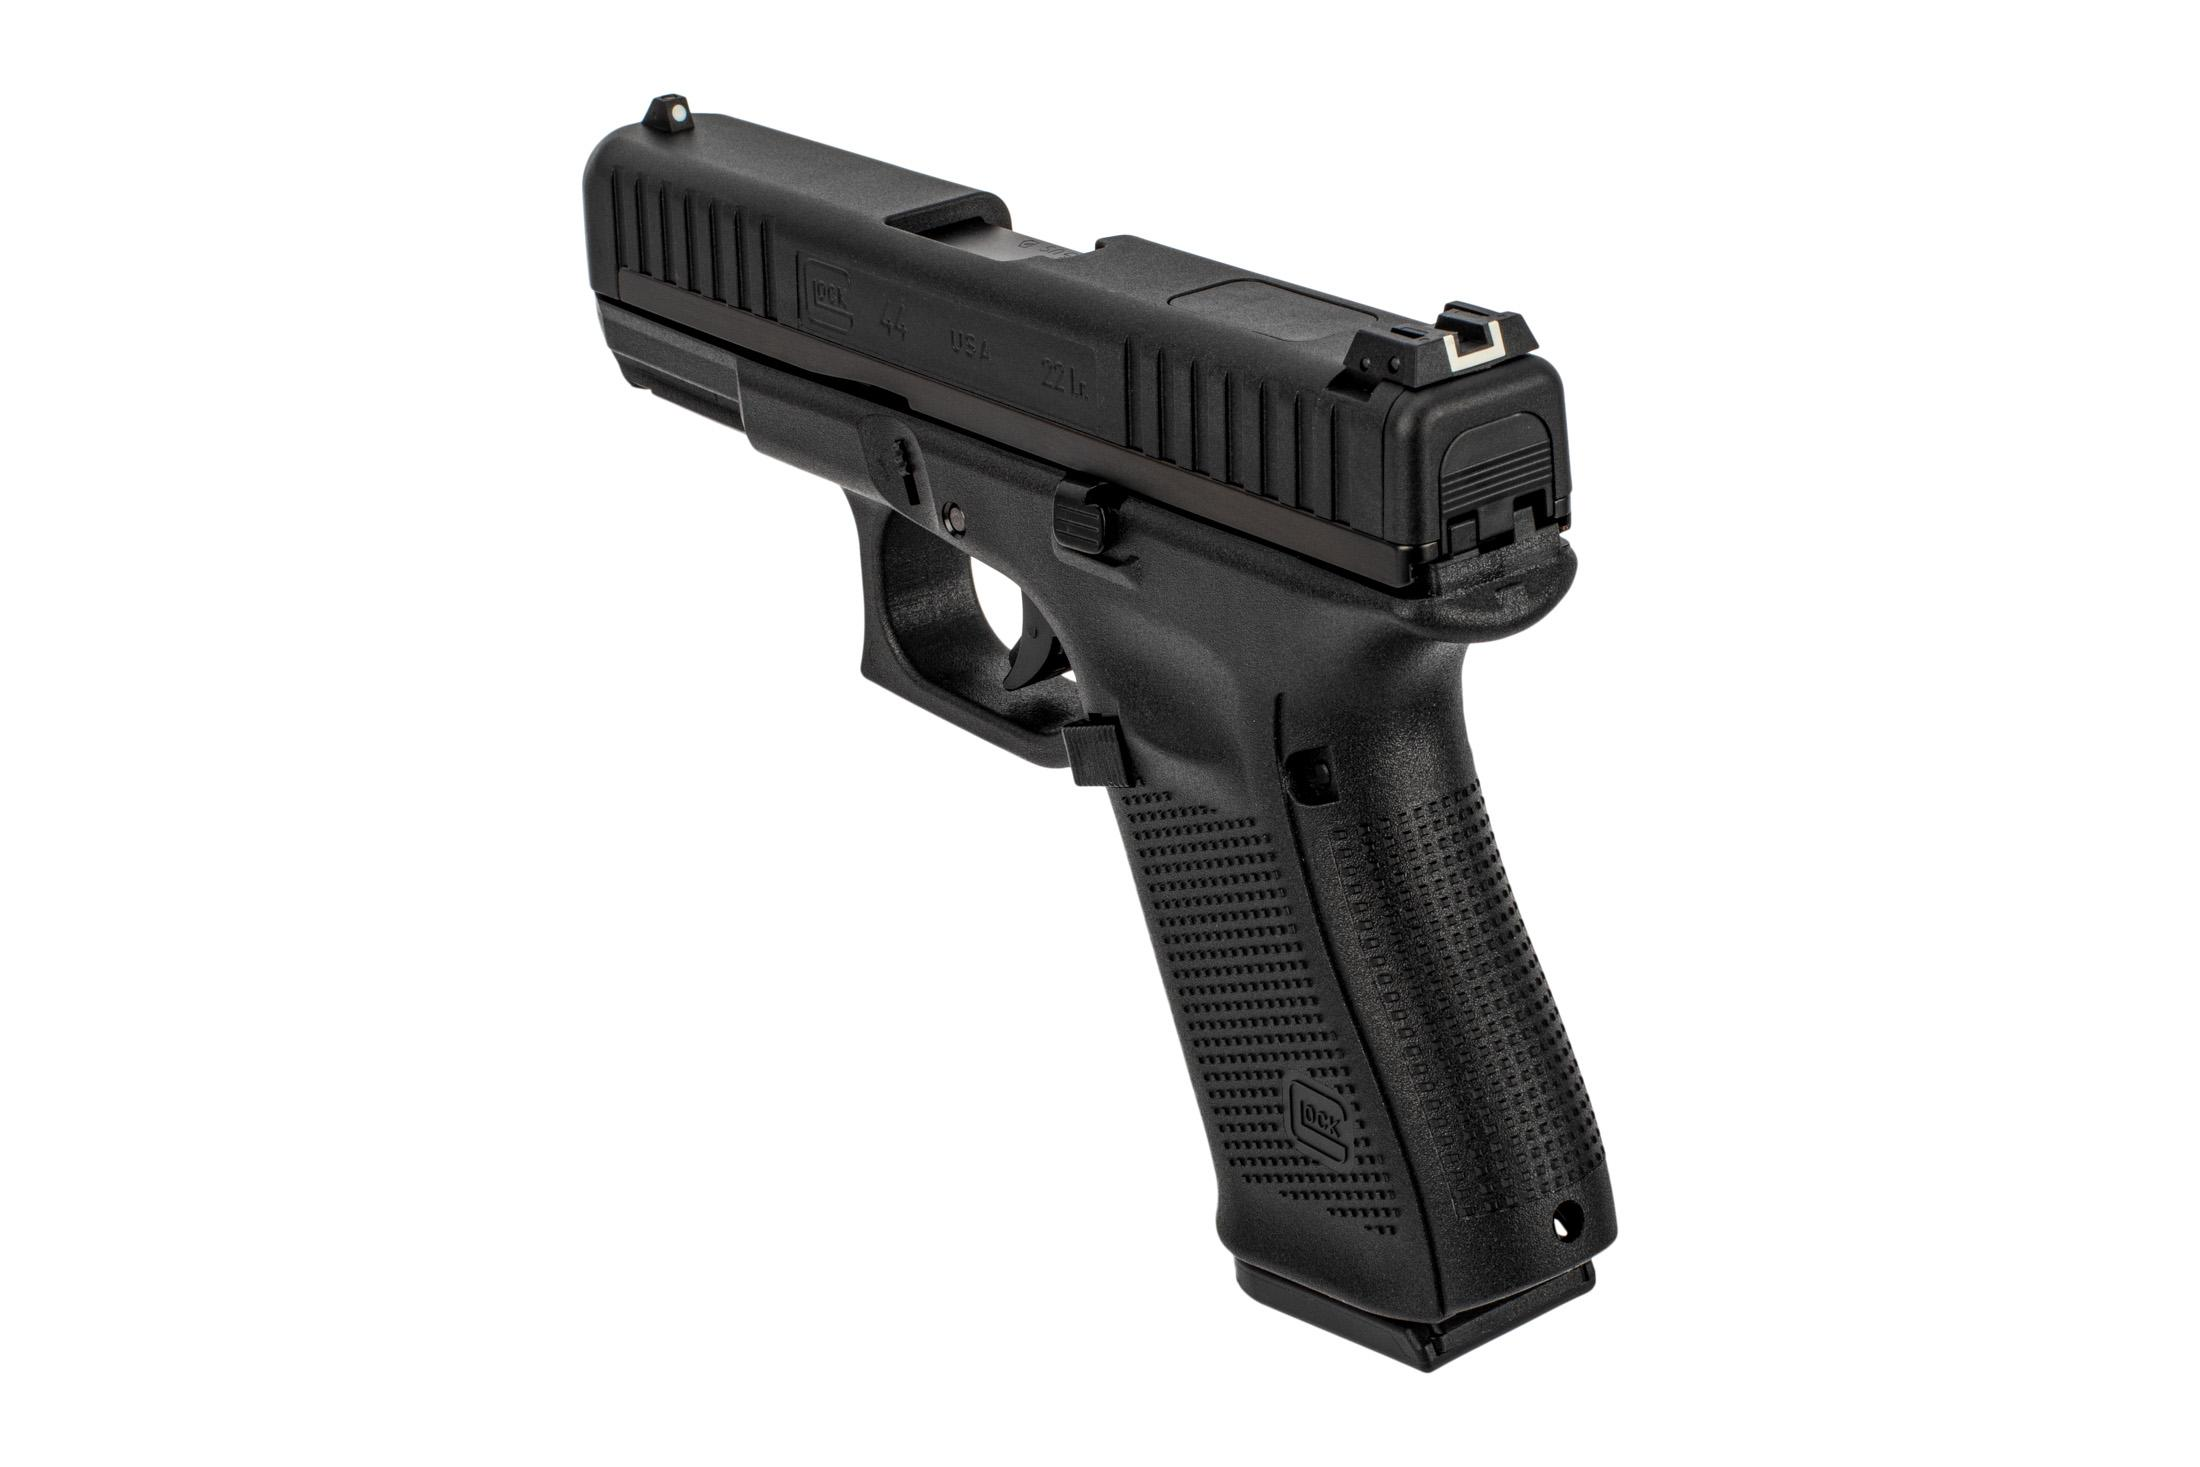 Glock 44 Magnum pistol features a G19 compact sized polymer frame